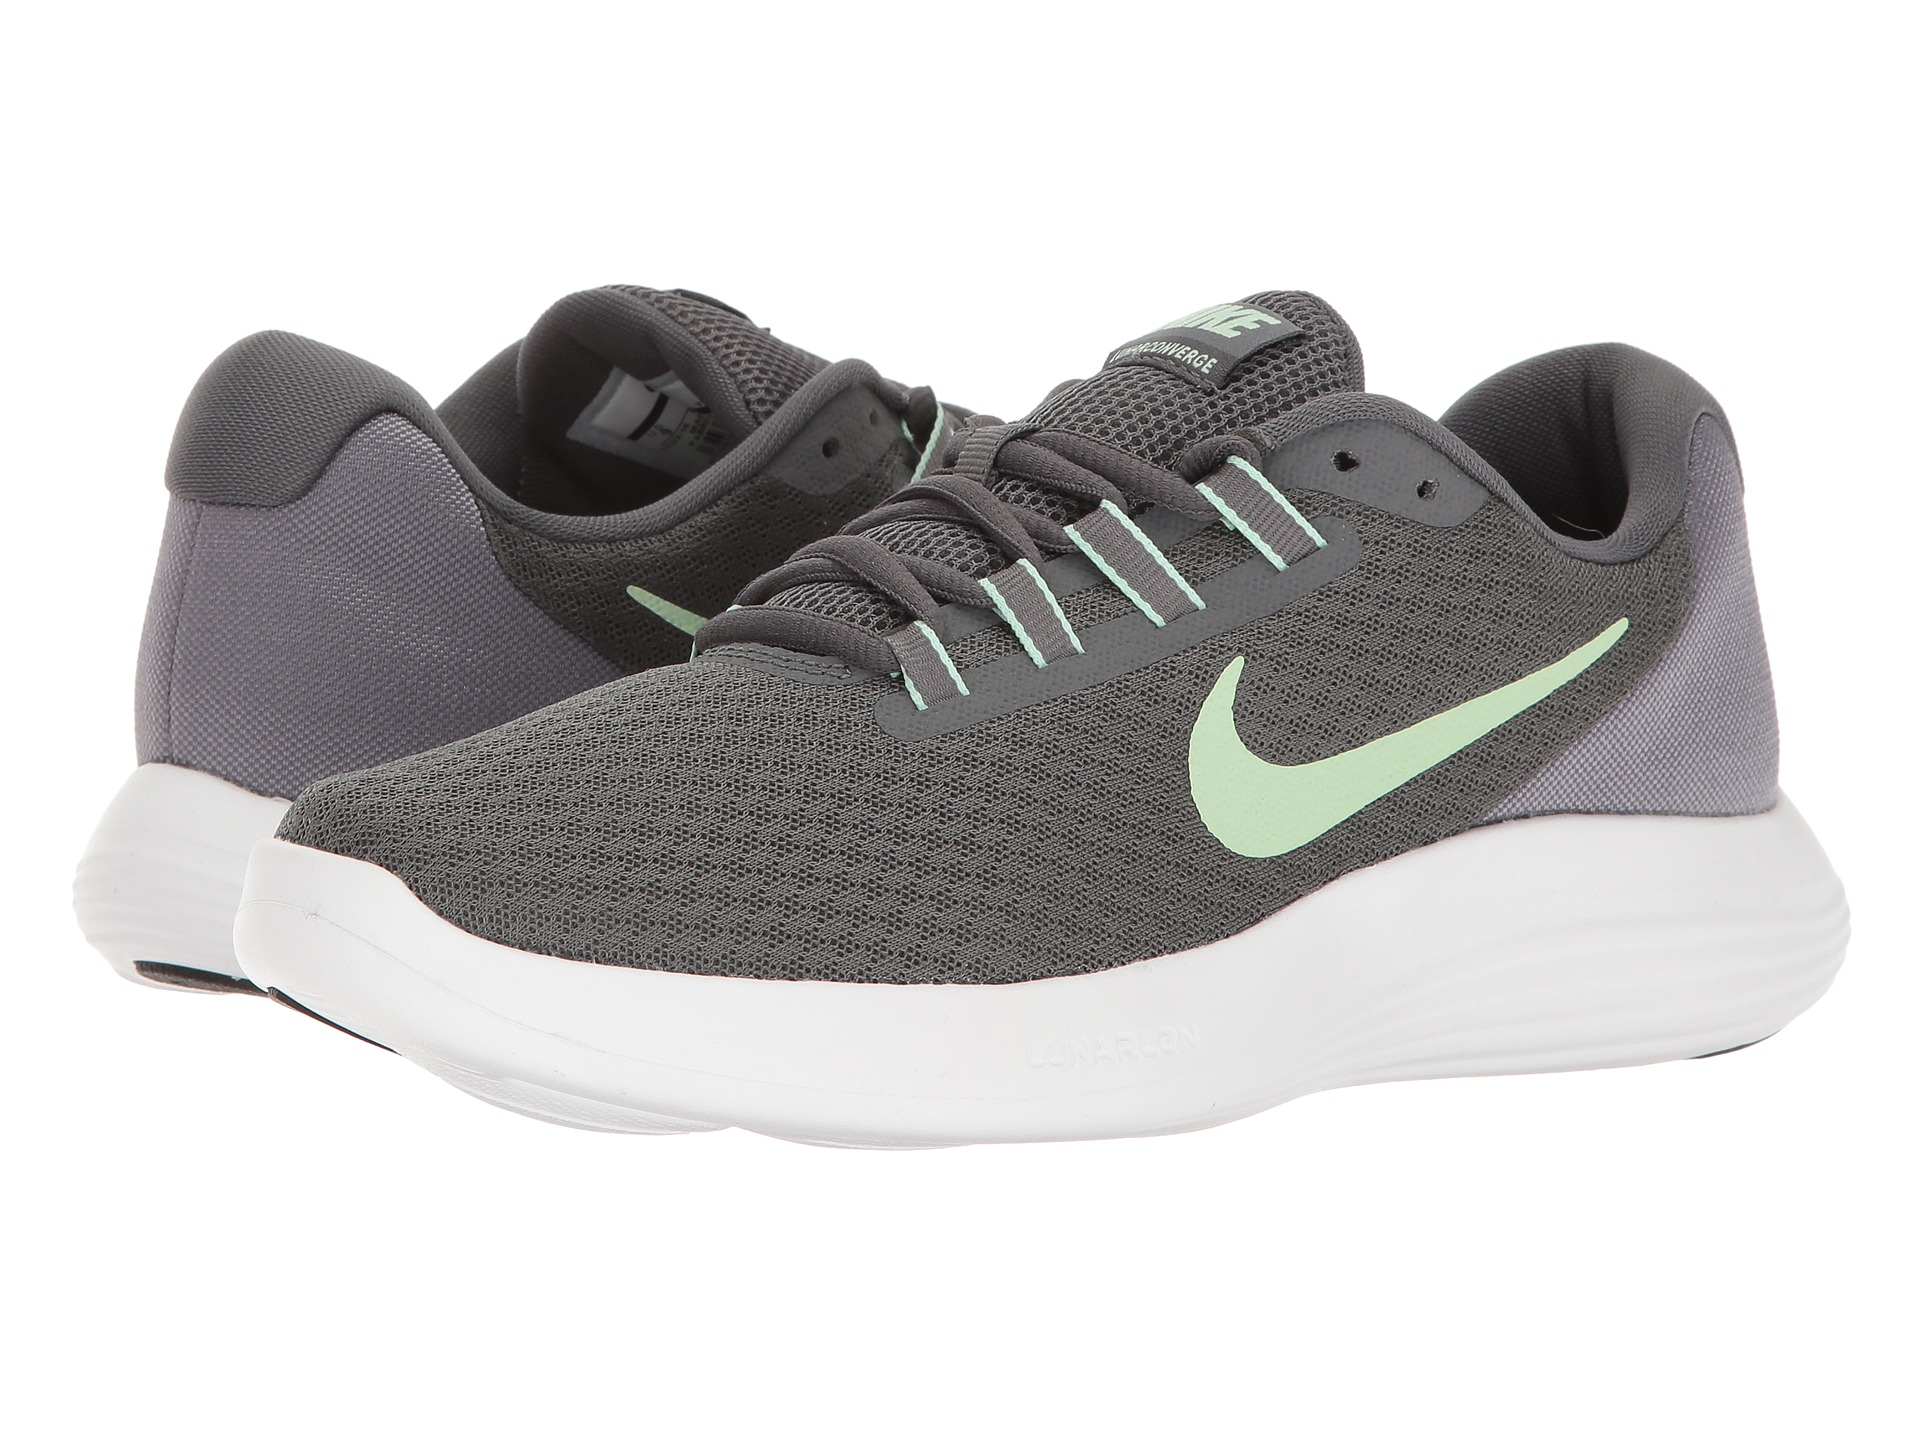 0bc9966d7db Nike Coral And Gray Sneaker Size Guide For Boys Nike Coral And Gray ...